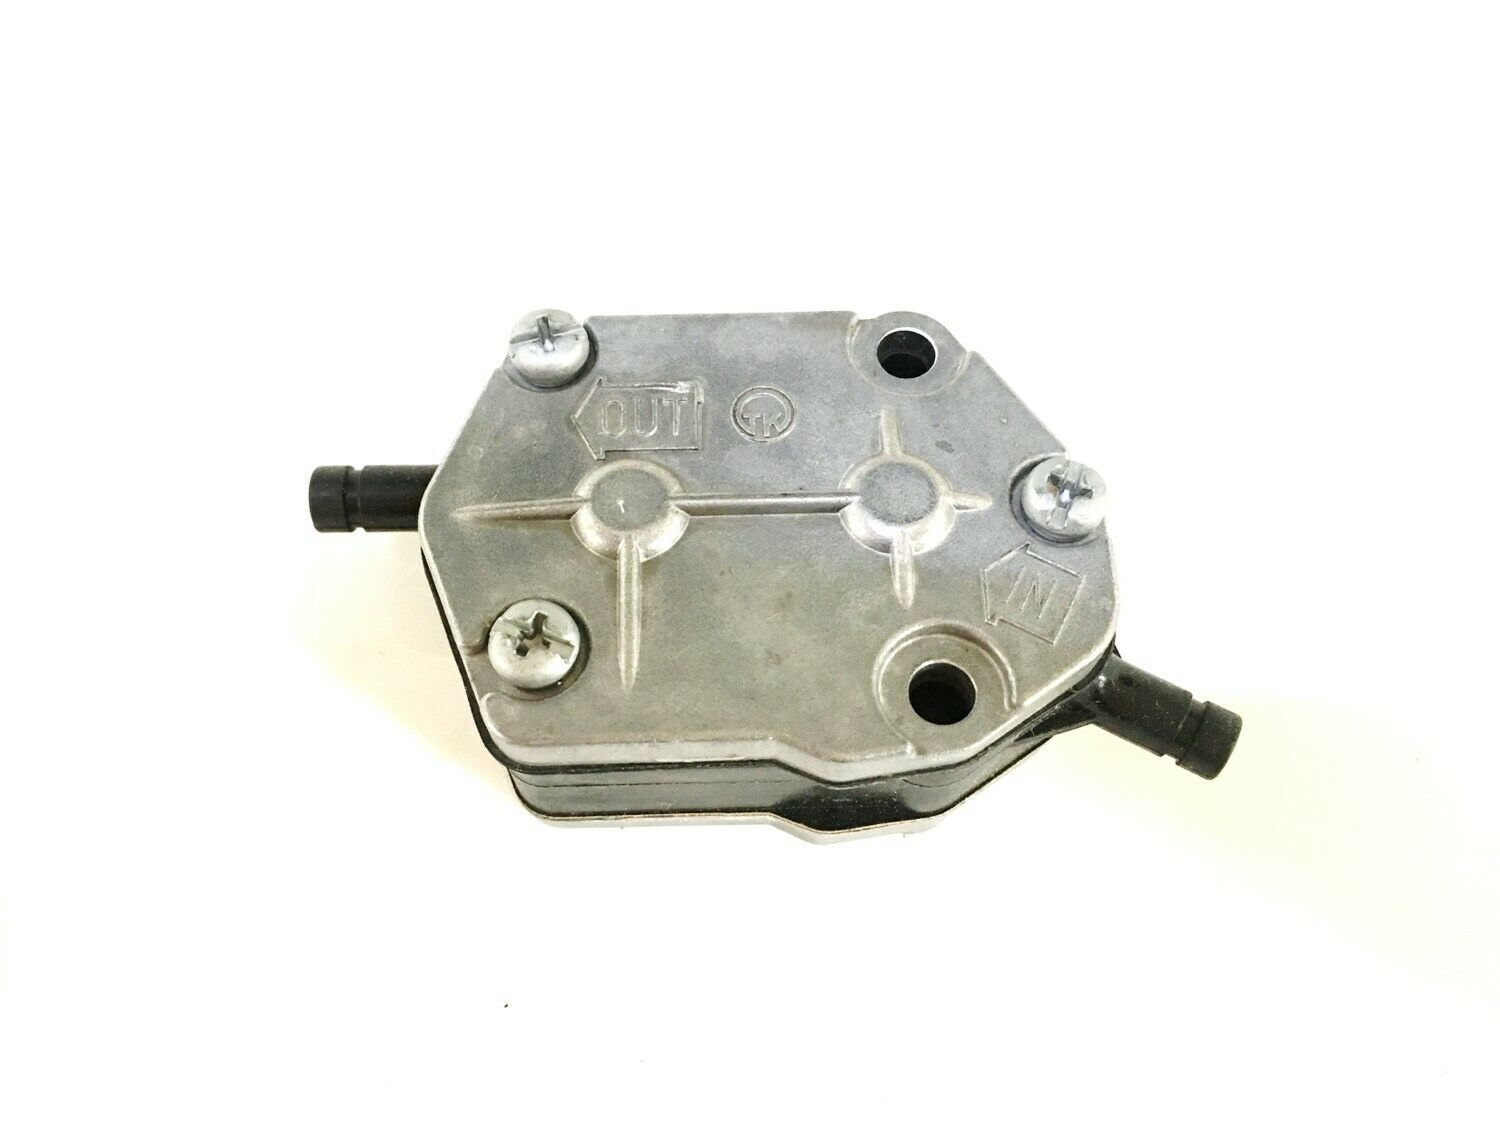 For Suzuki Outboard 15100-94311 Fuel Pump Assy DT 25-65HP 2 stroke Boat Marine